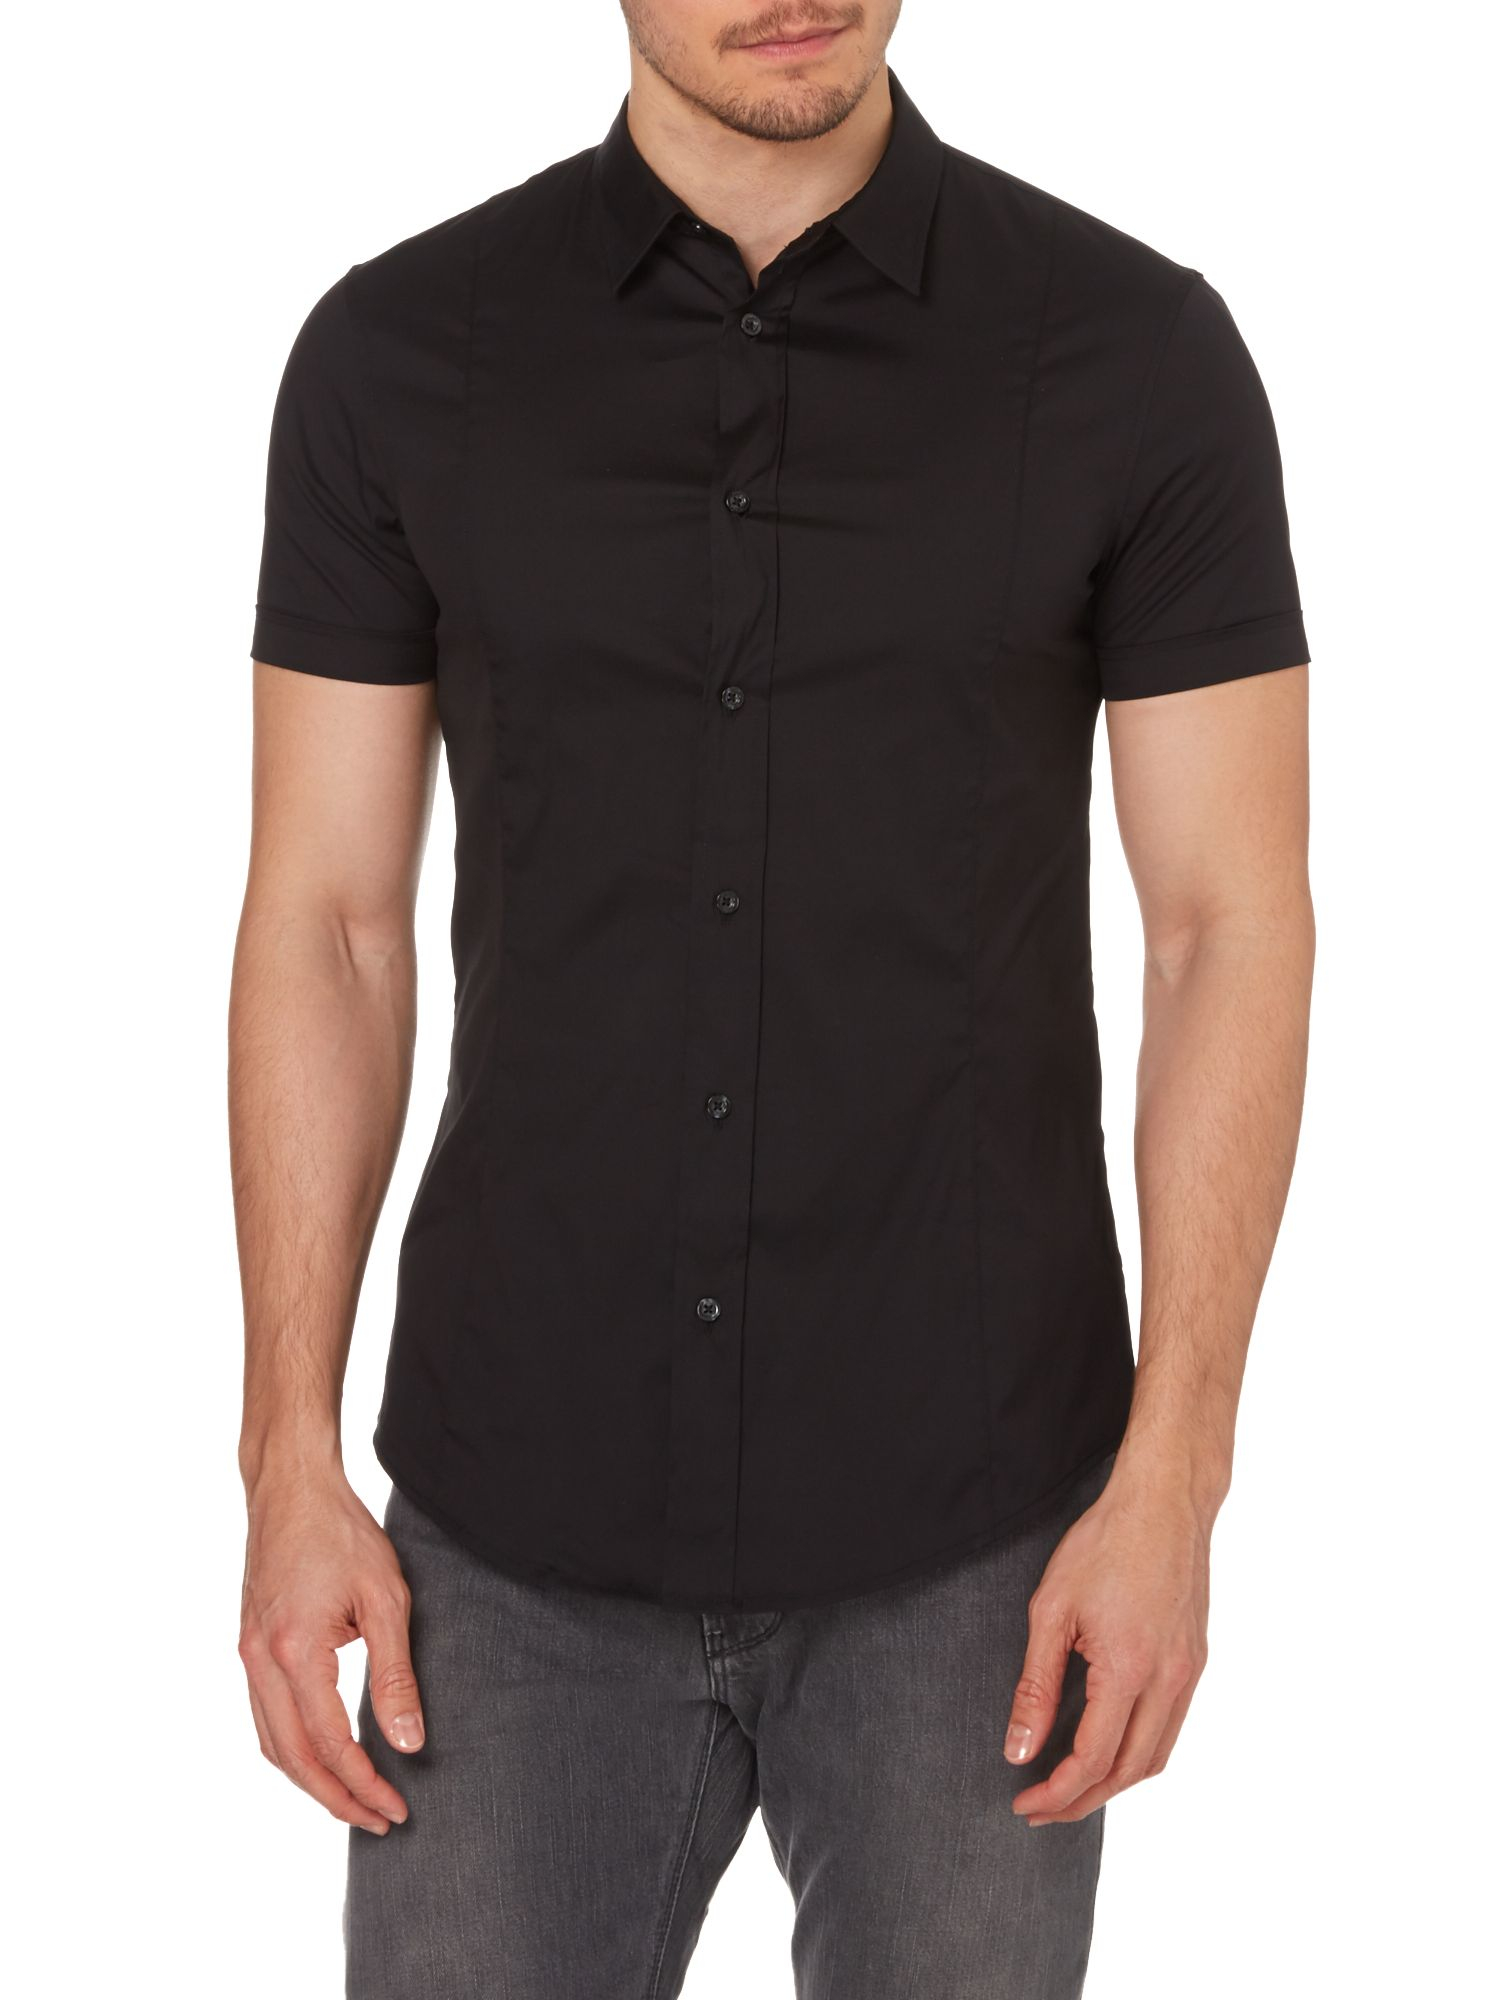 Mens Black Short Sleeve Shirt